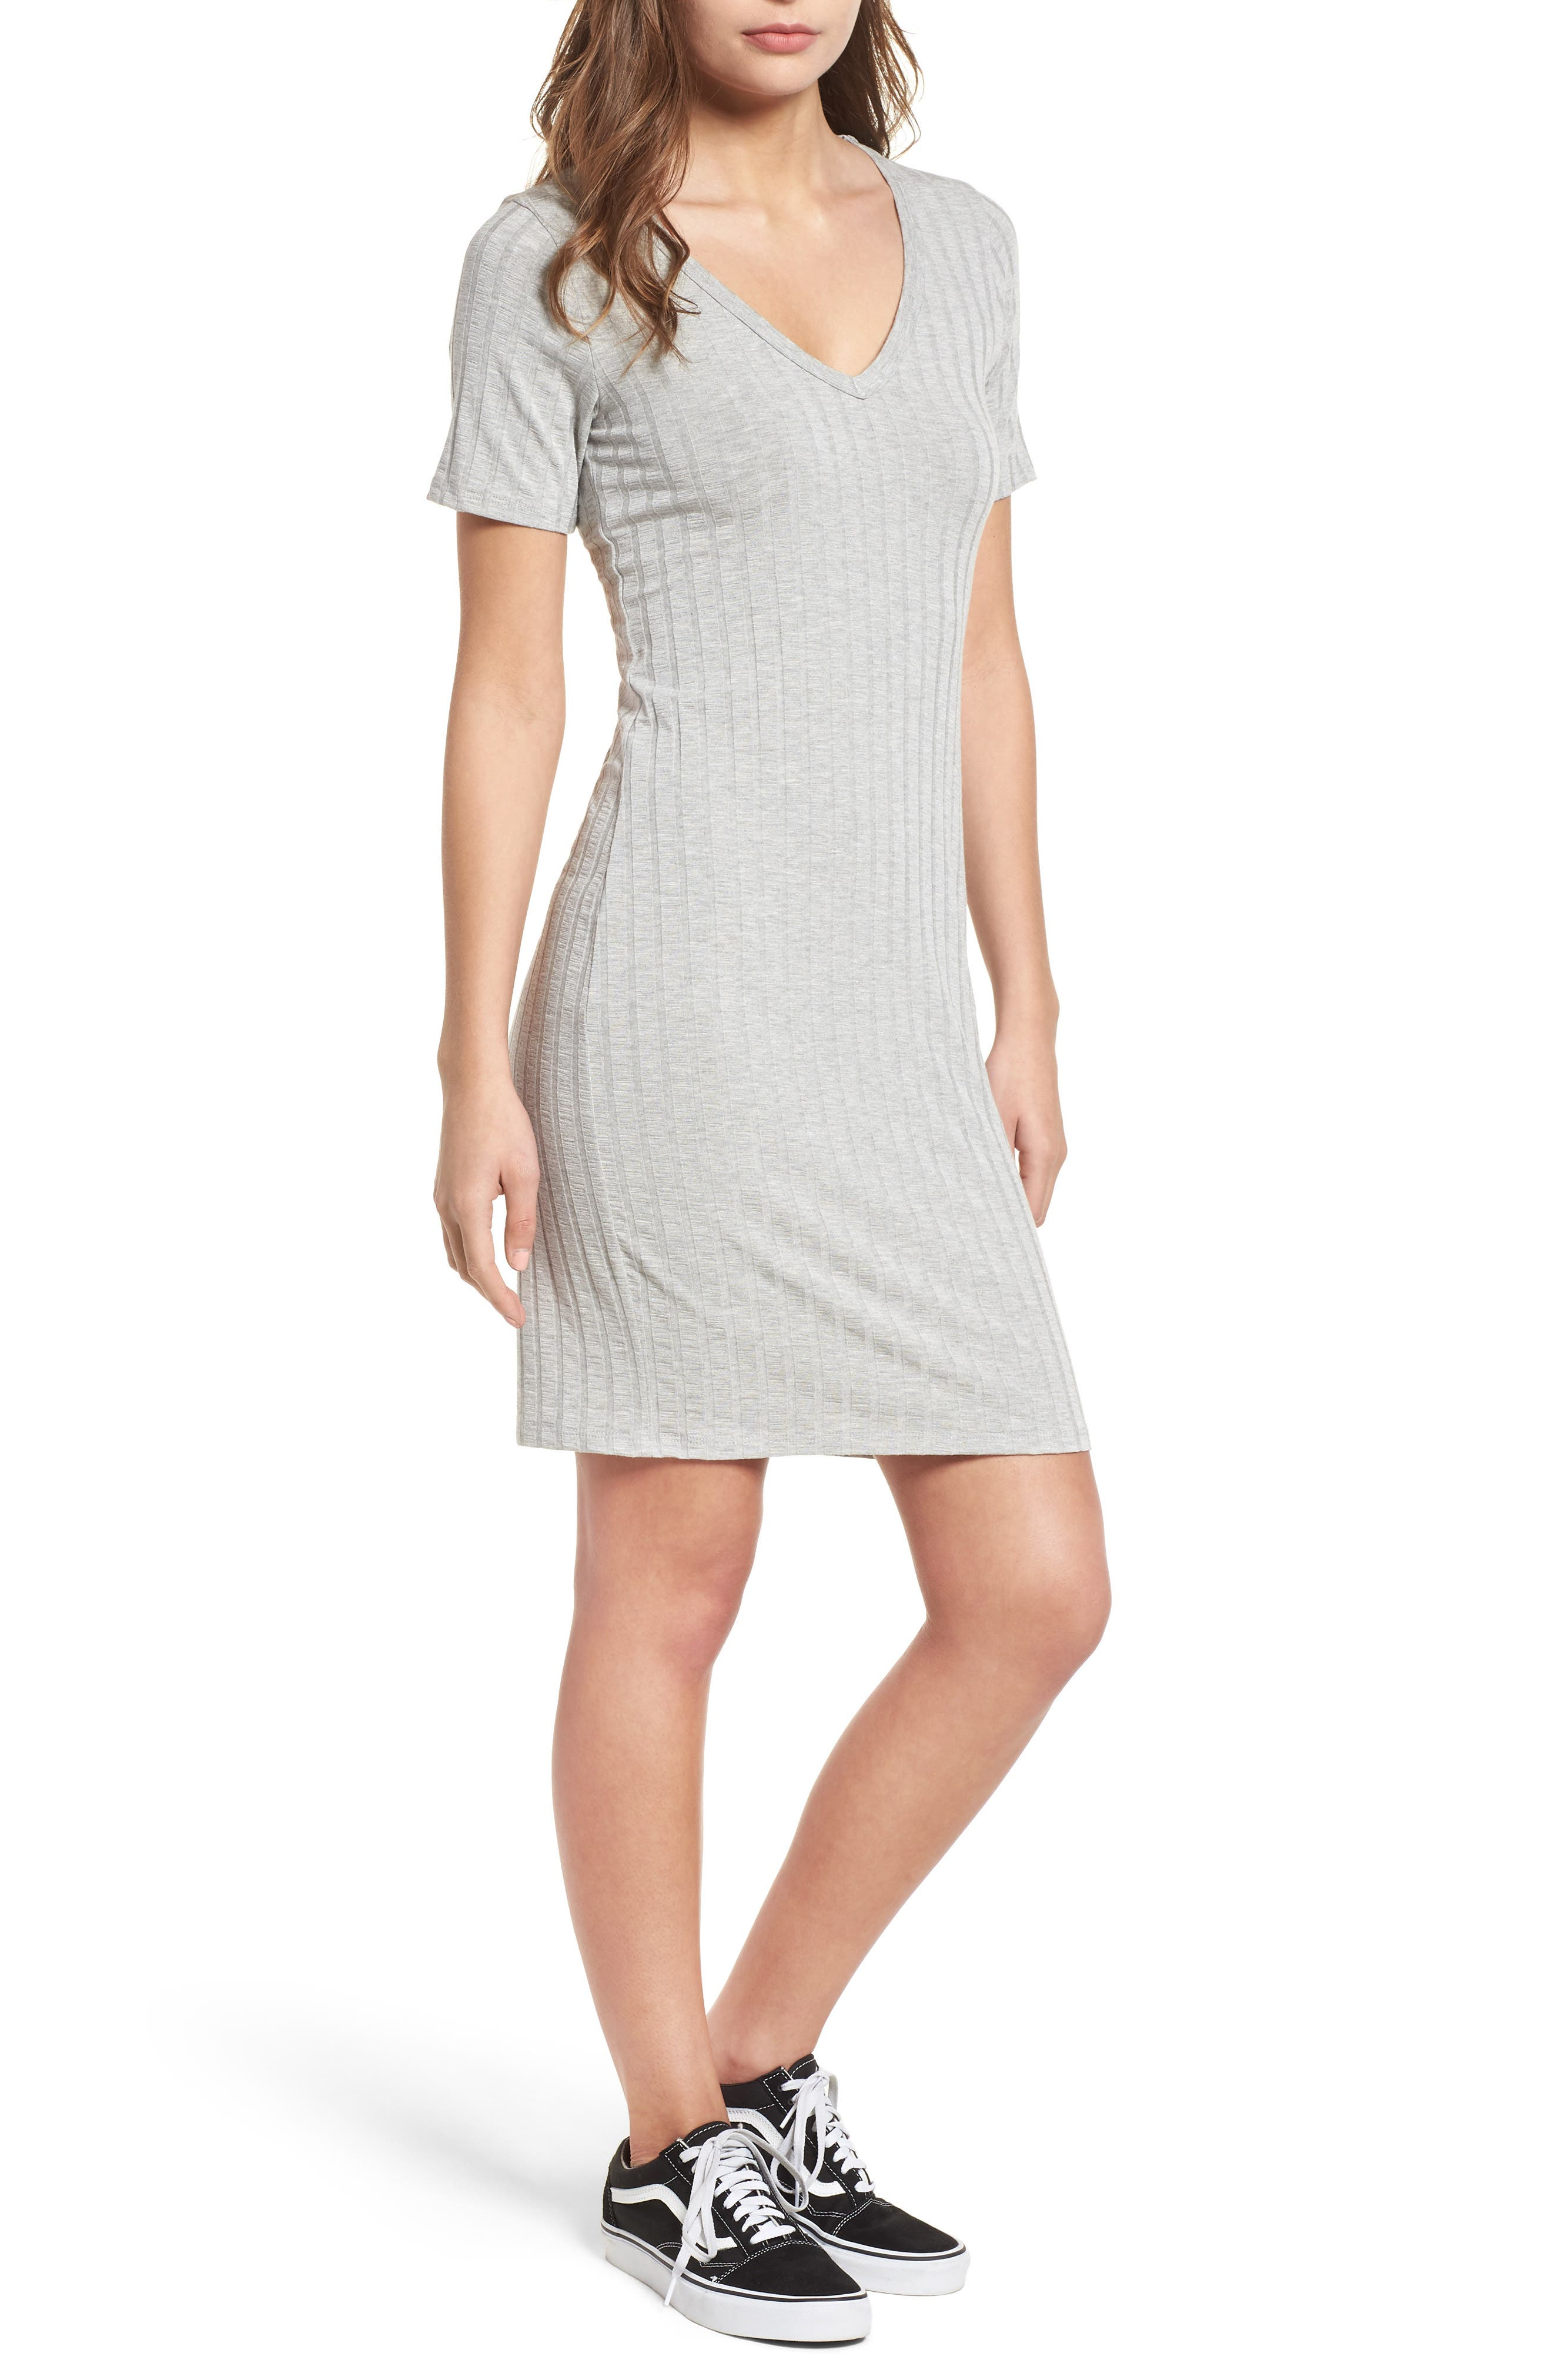 Project Social T Ribbed Body-Con Dress,                             Main thumbnail 1, color,                             Heather Grey